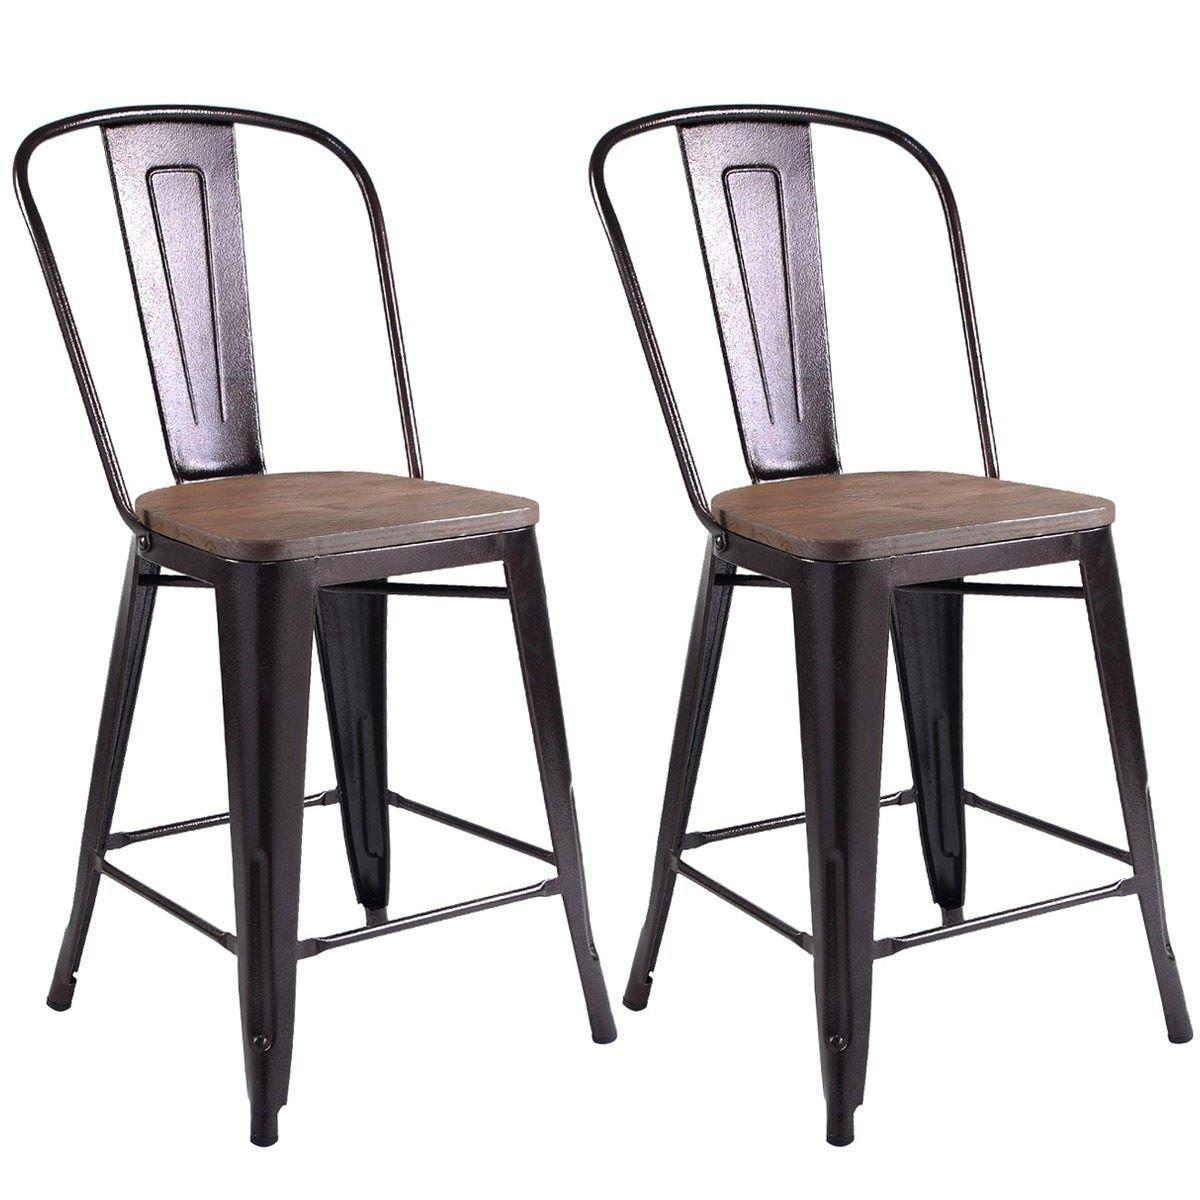 Copper Set Of 4 Metal Wood Counter Stool Kitchen Dining: Amazon.com: COSTWAY Copper Set Of 2 Tolix Style Metal